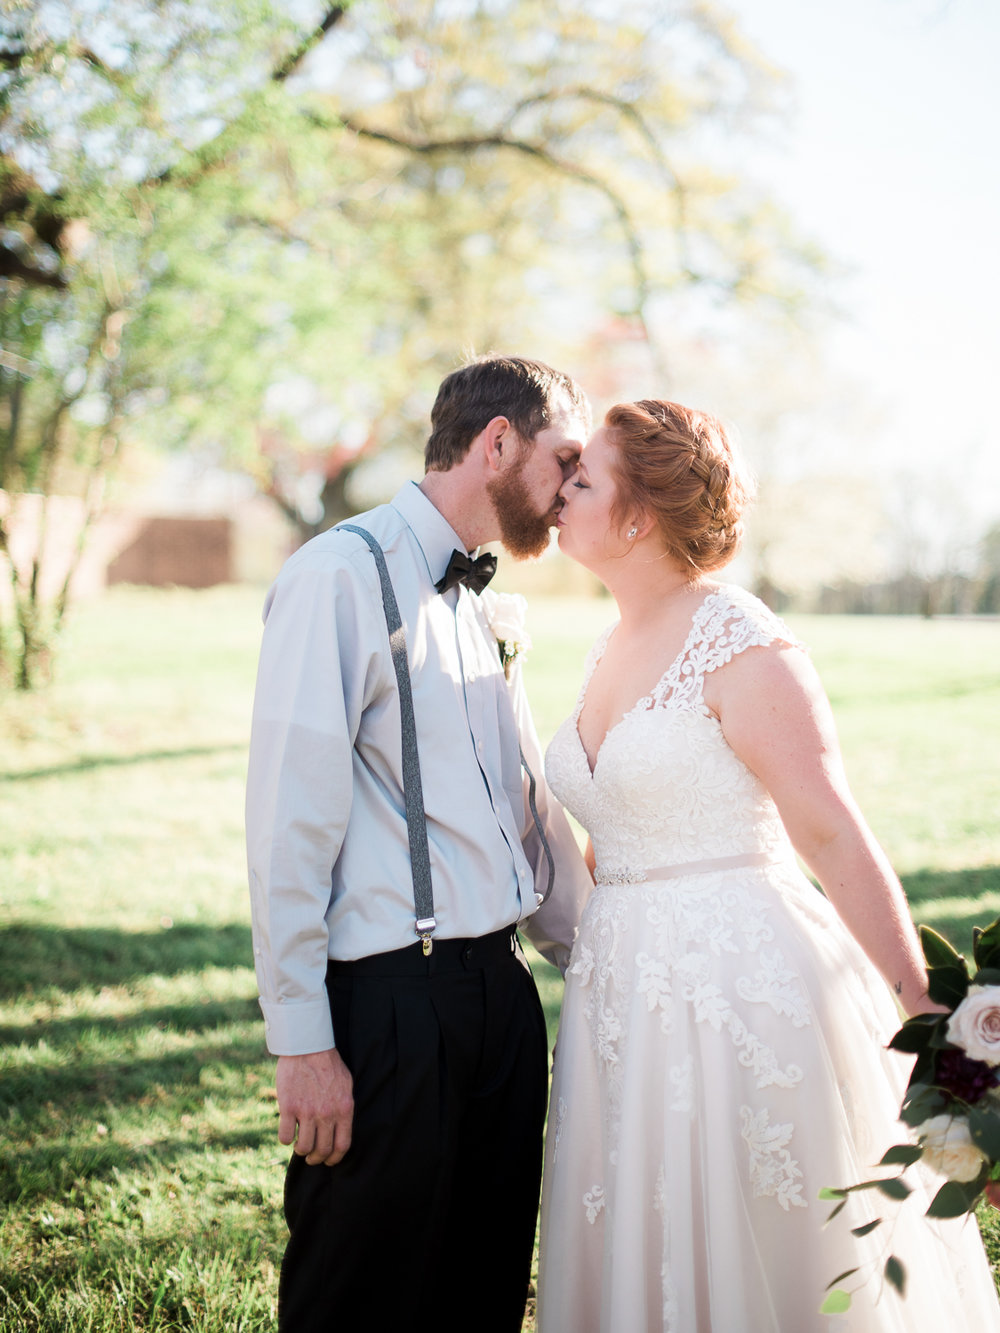 christinadavisphotography+realwedding+aprilfirst91.jpg